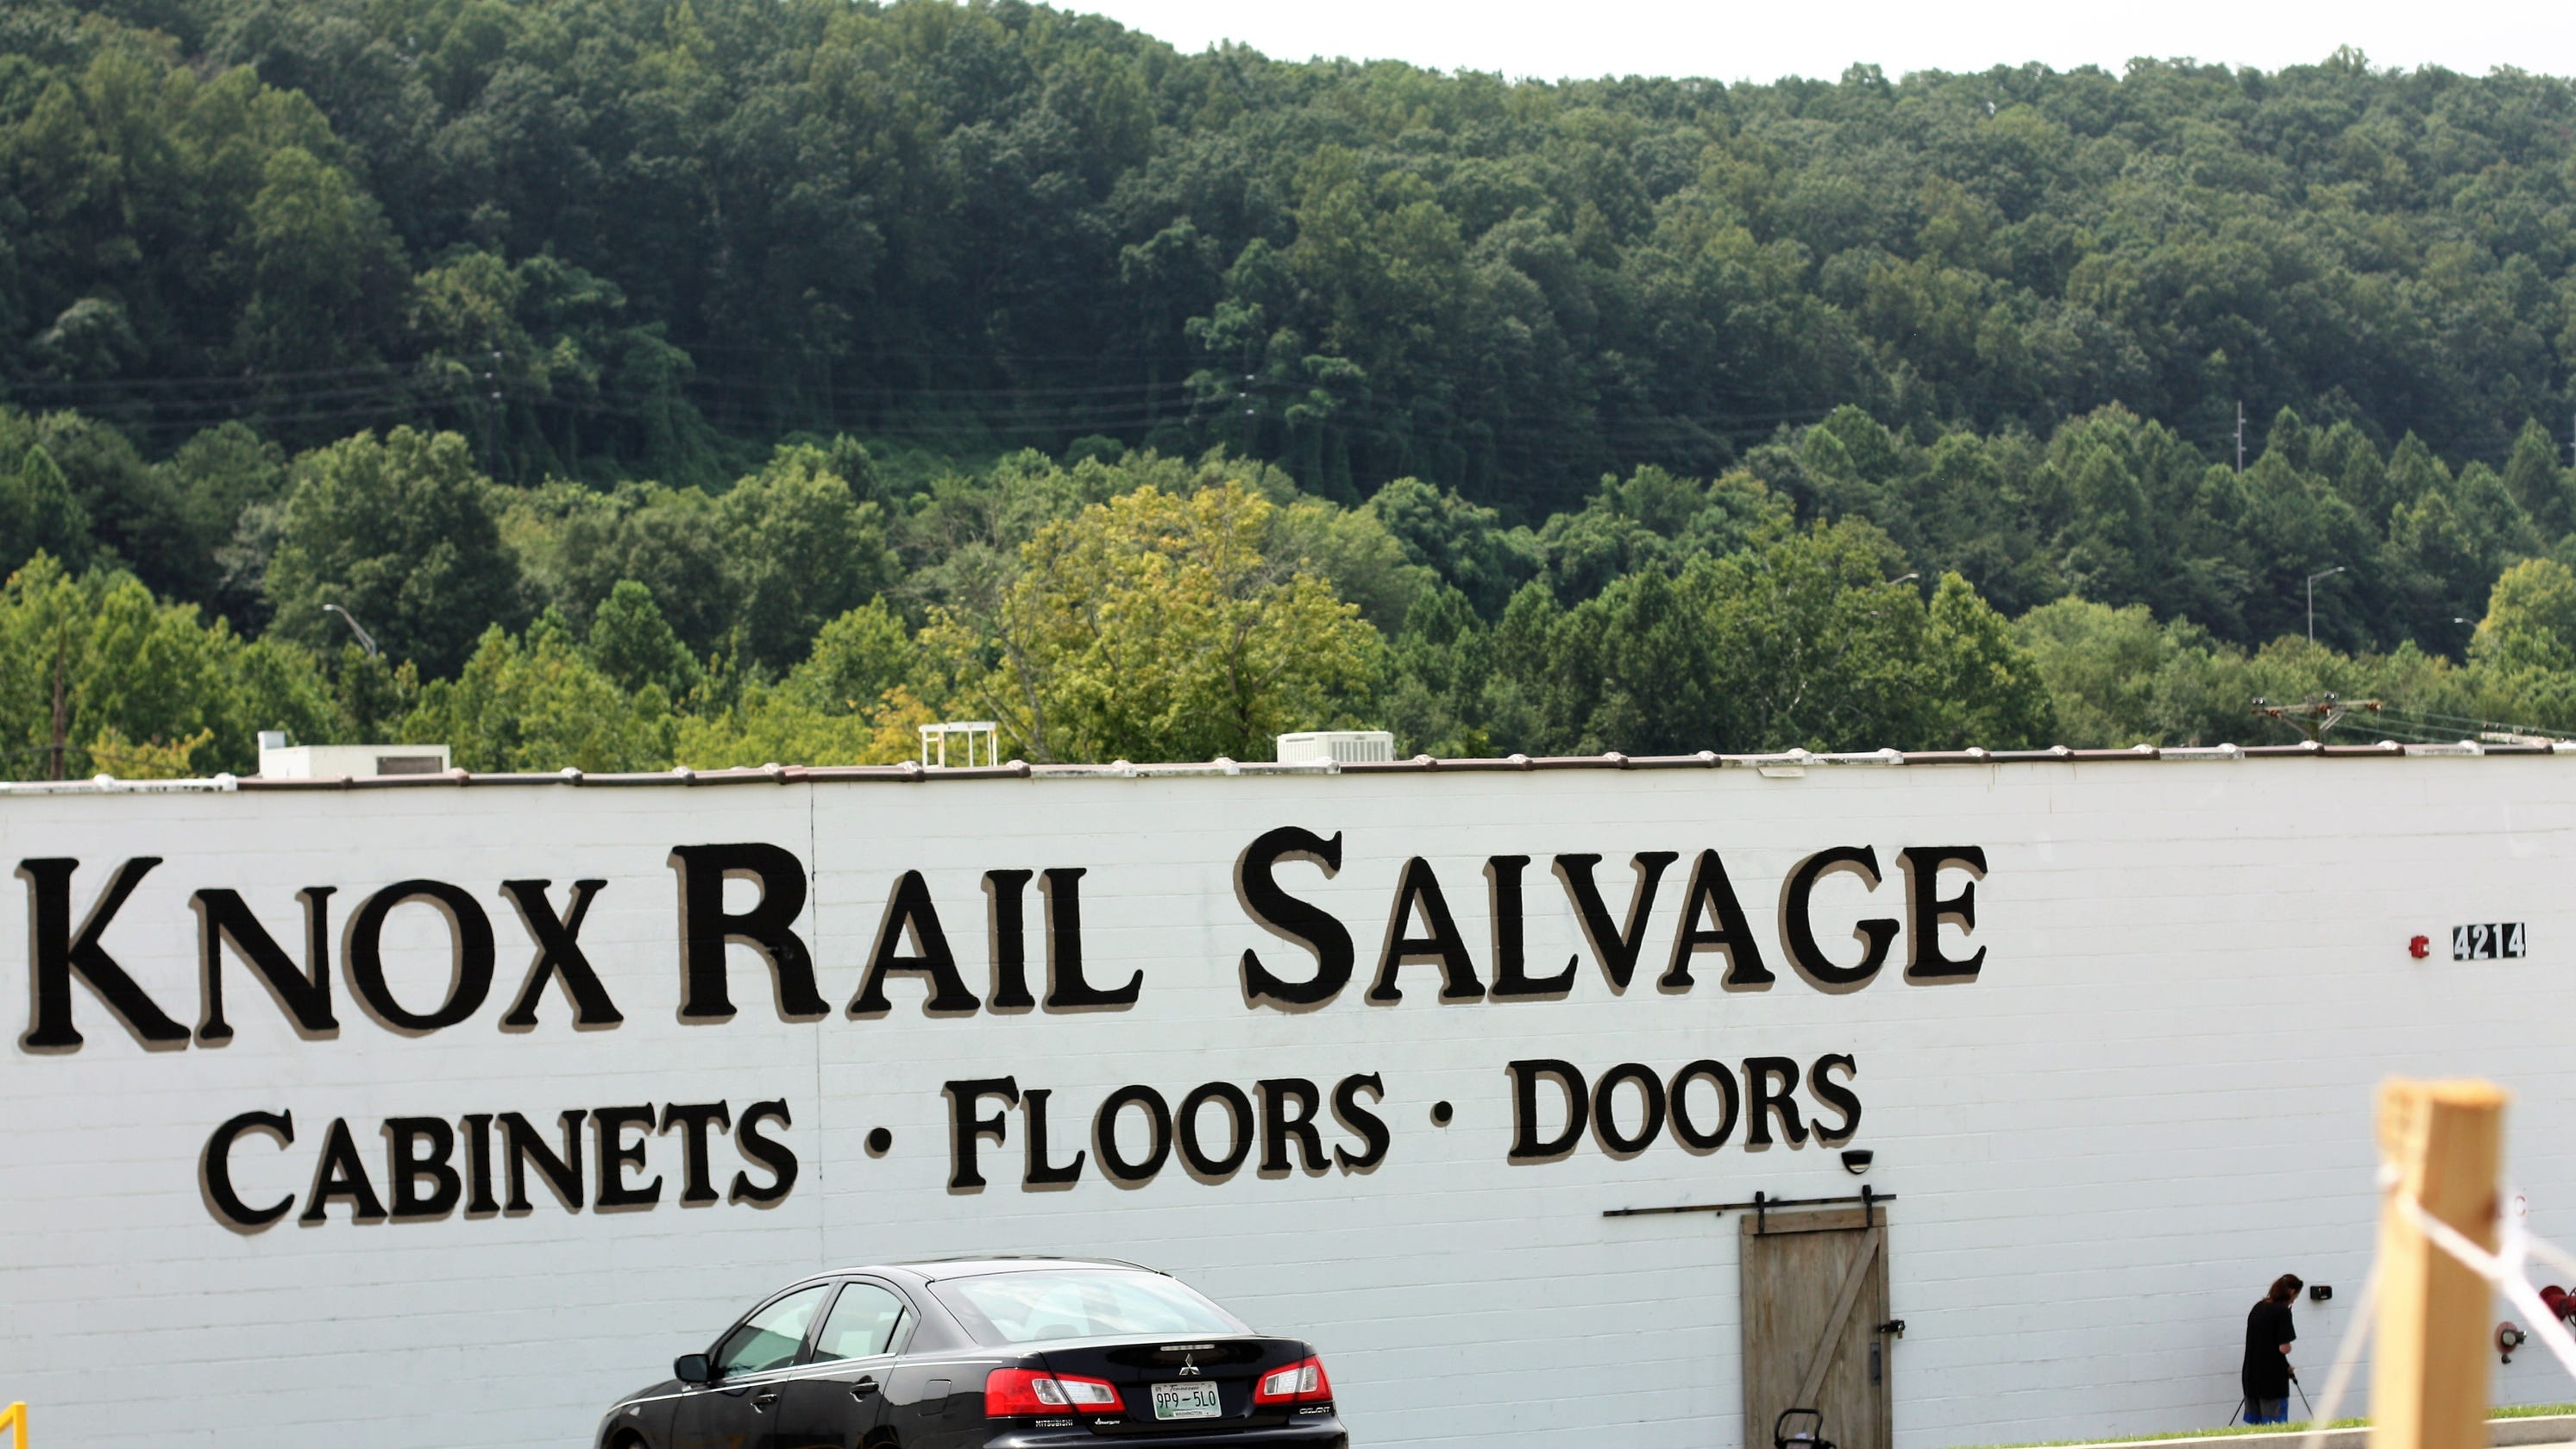 Knox Rail Salvage Home Improvement Business In Enjoying New